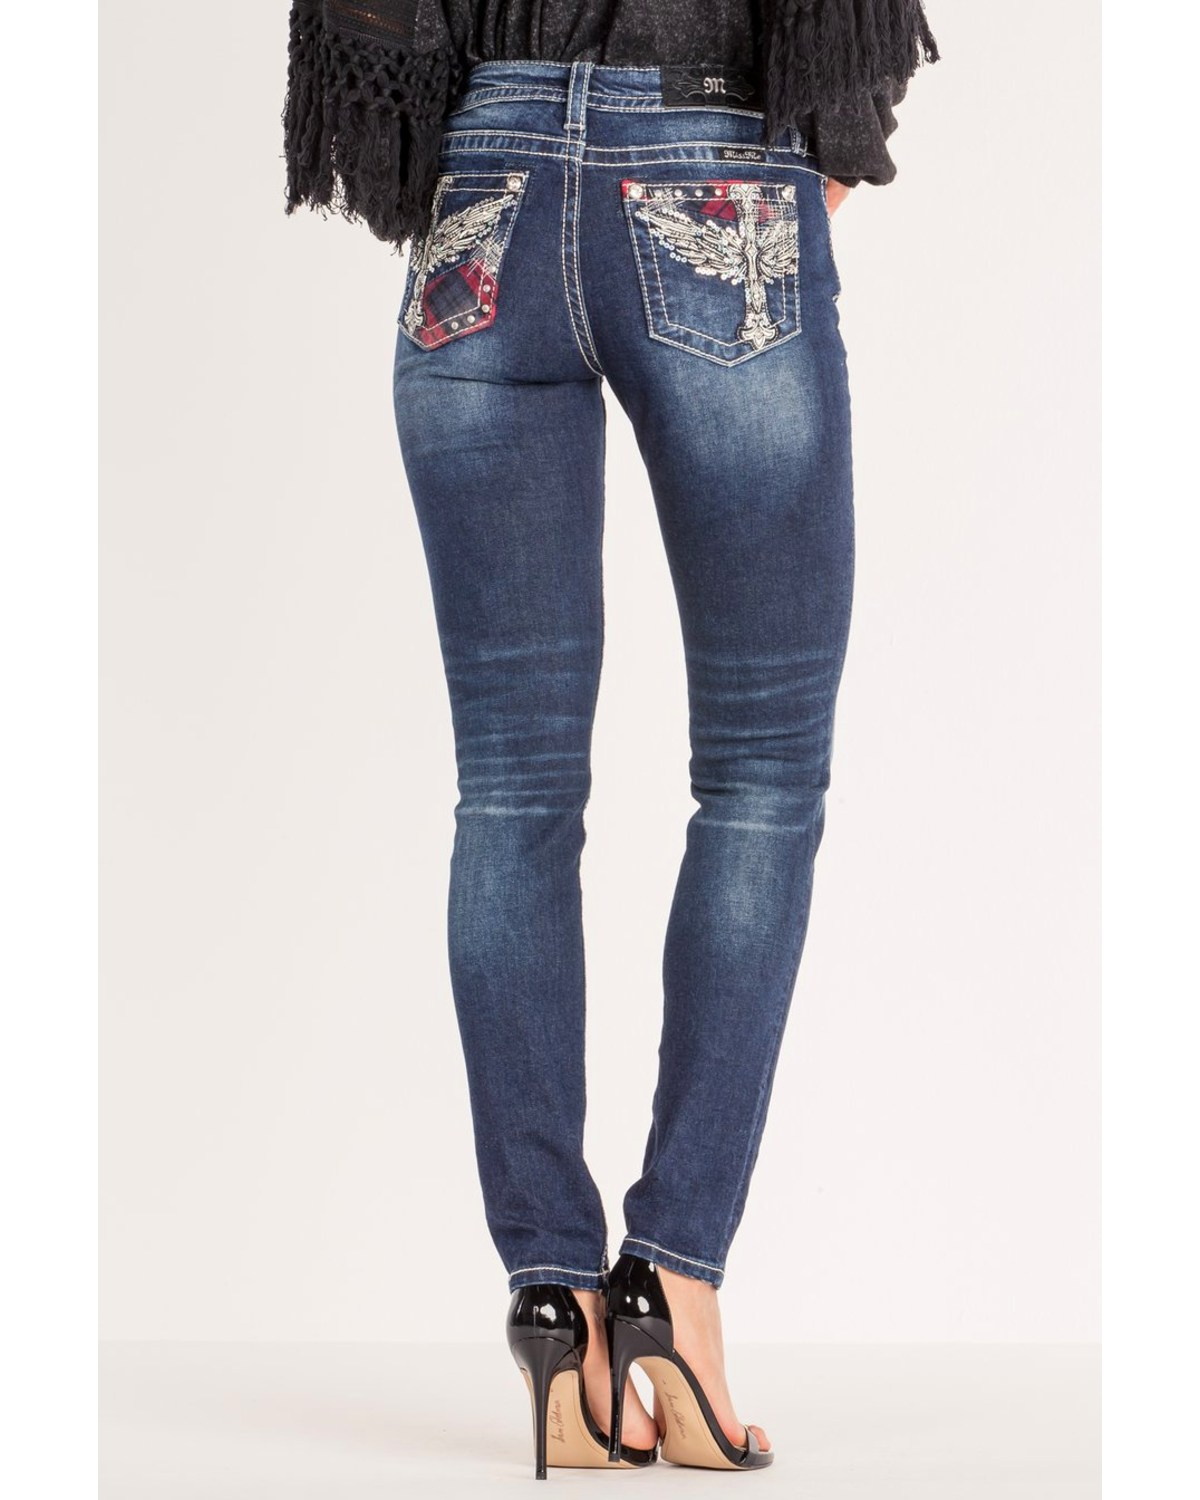 Miss Me Women s Winged Cross Mid-Rise Skinny Jeans  c664b3e05